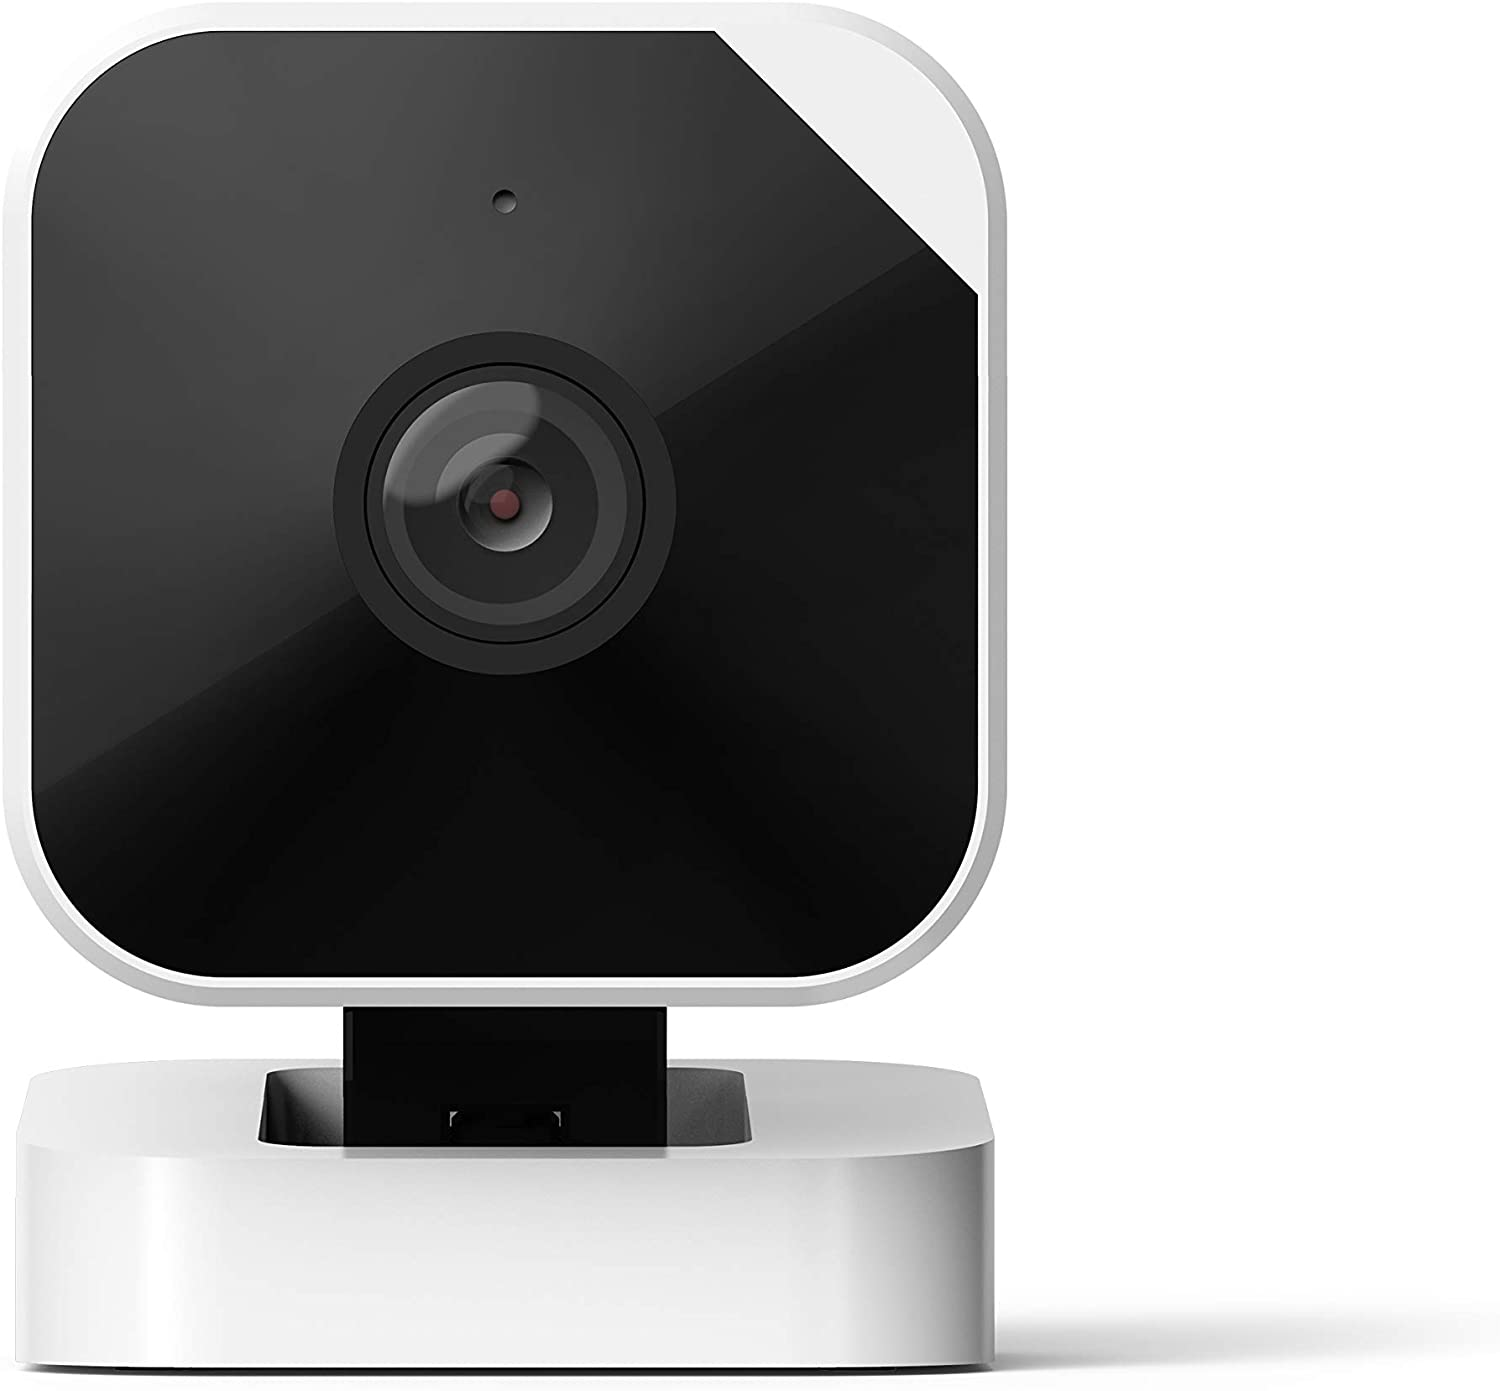 Abode Free shipping Cam 2 Plug-in excellence Security Outdoor WiFi-Connected Indoor